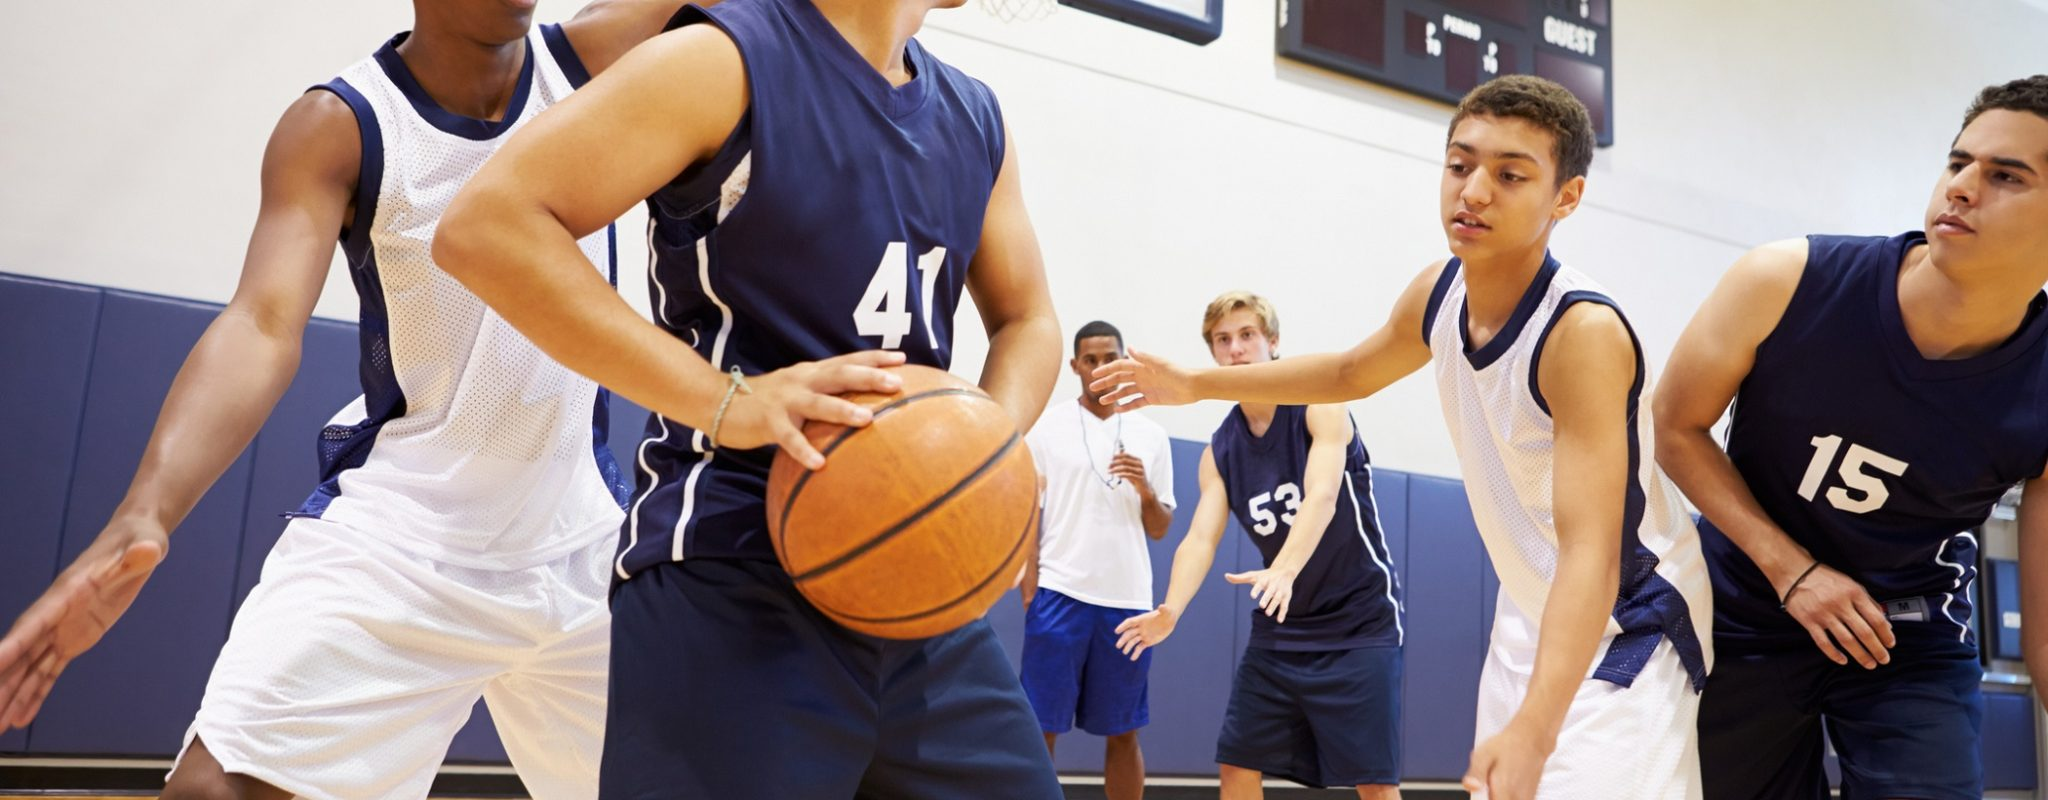 Sudden cardiac arrest and teenage athletes | Steven Fishberger, MD | Promise: Powered by Nemours Children's Health System